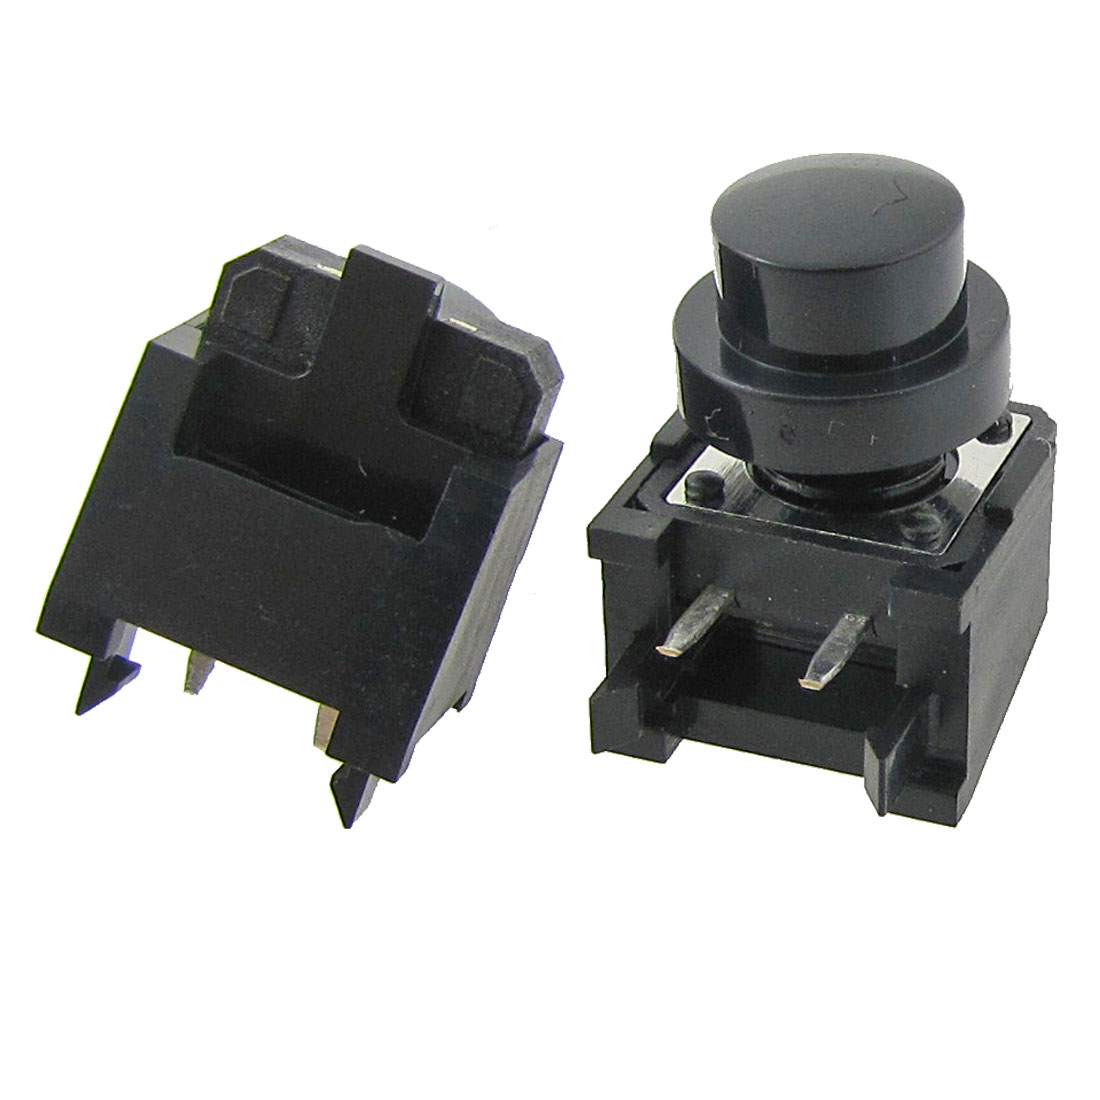 2 Pcs Momentary Tact Push Button Switch Right Angle 2 Pin 12 x 12 x 12mm + Cap